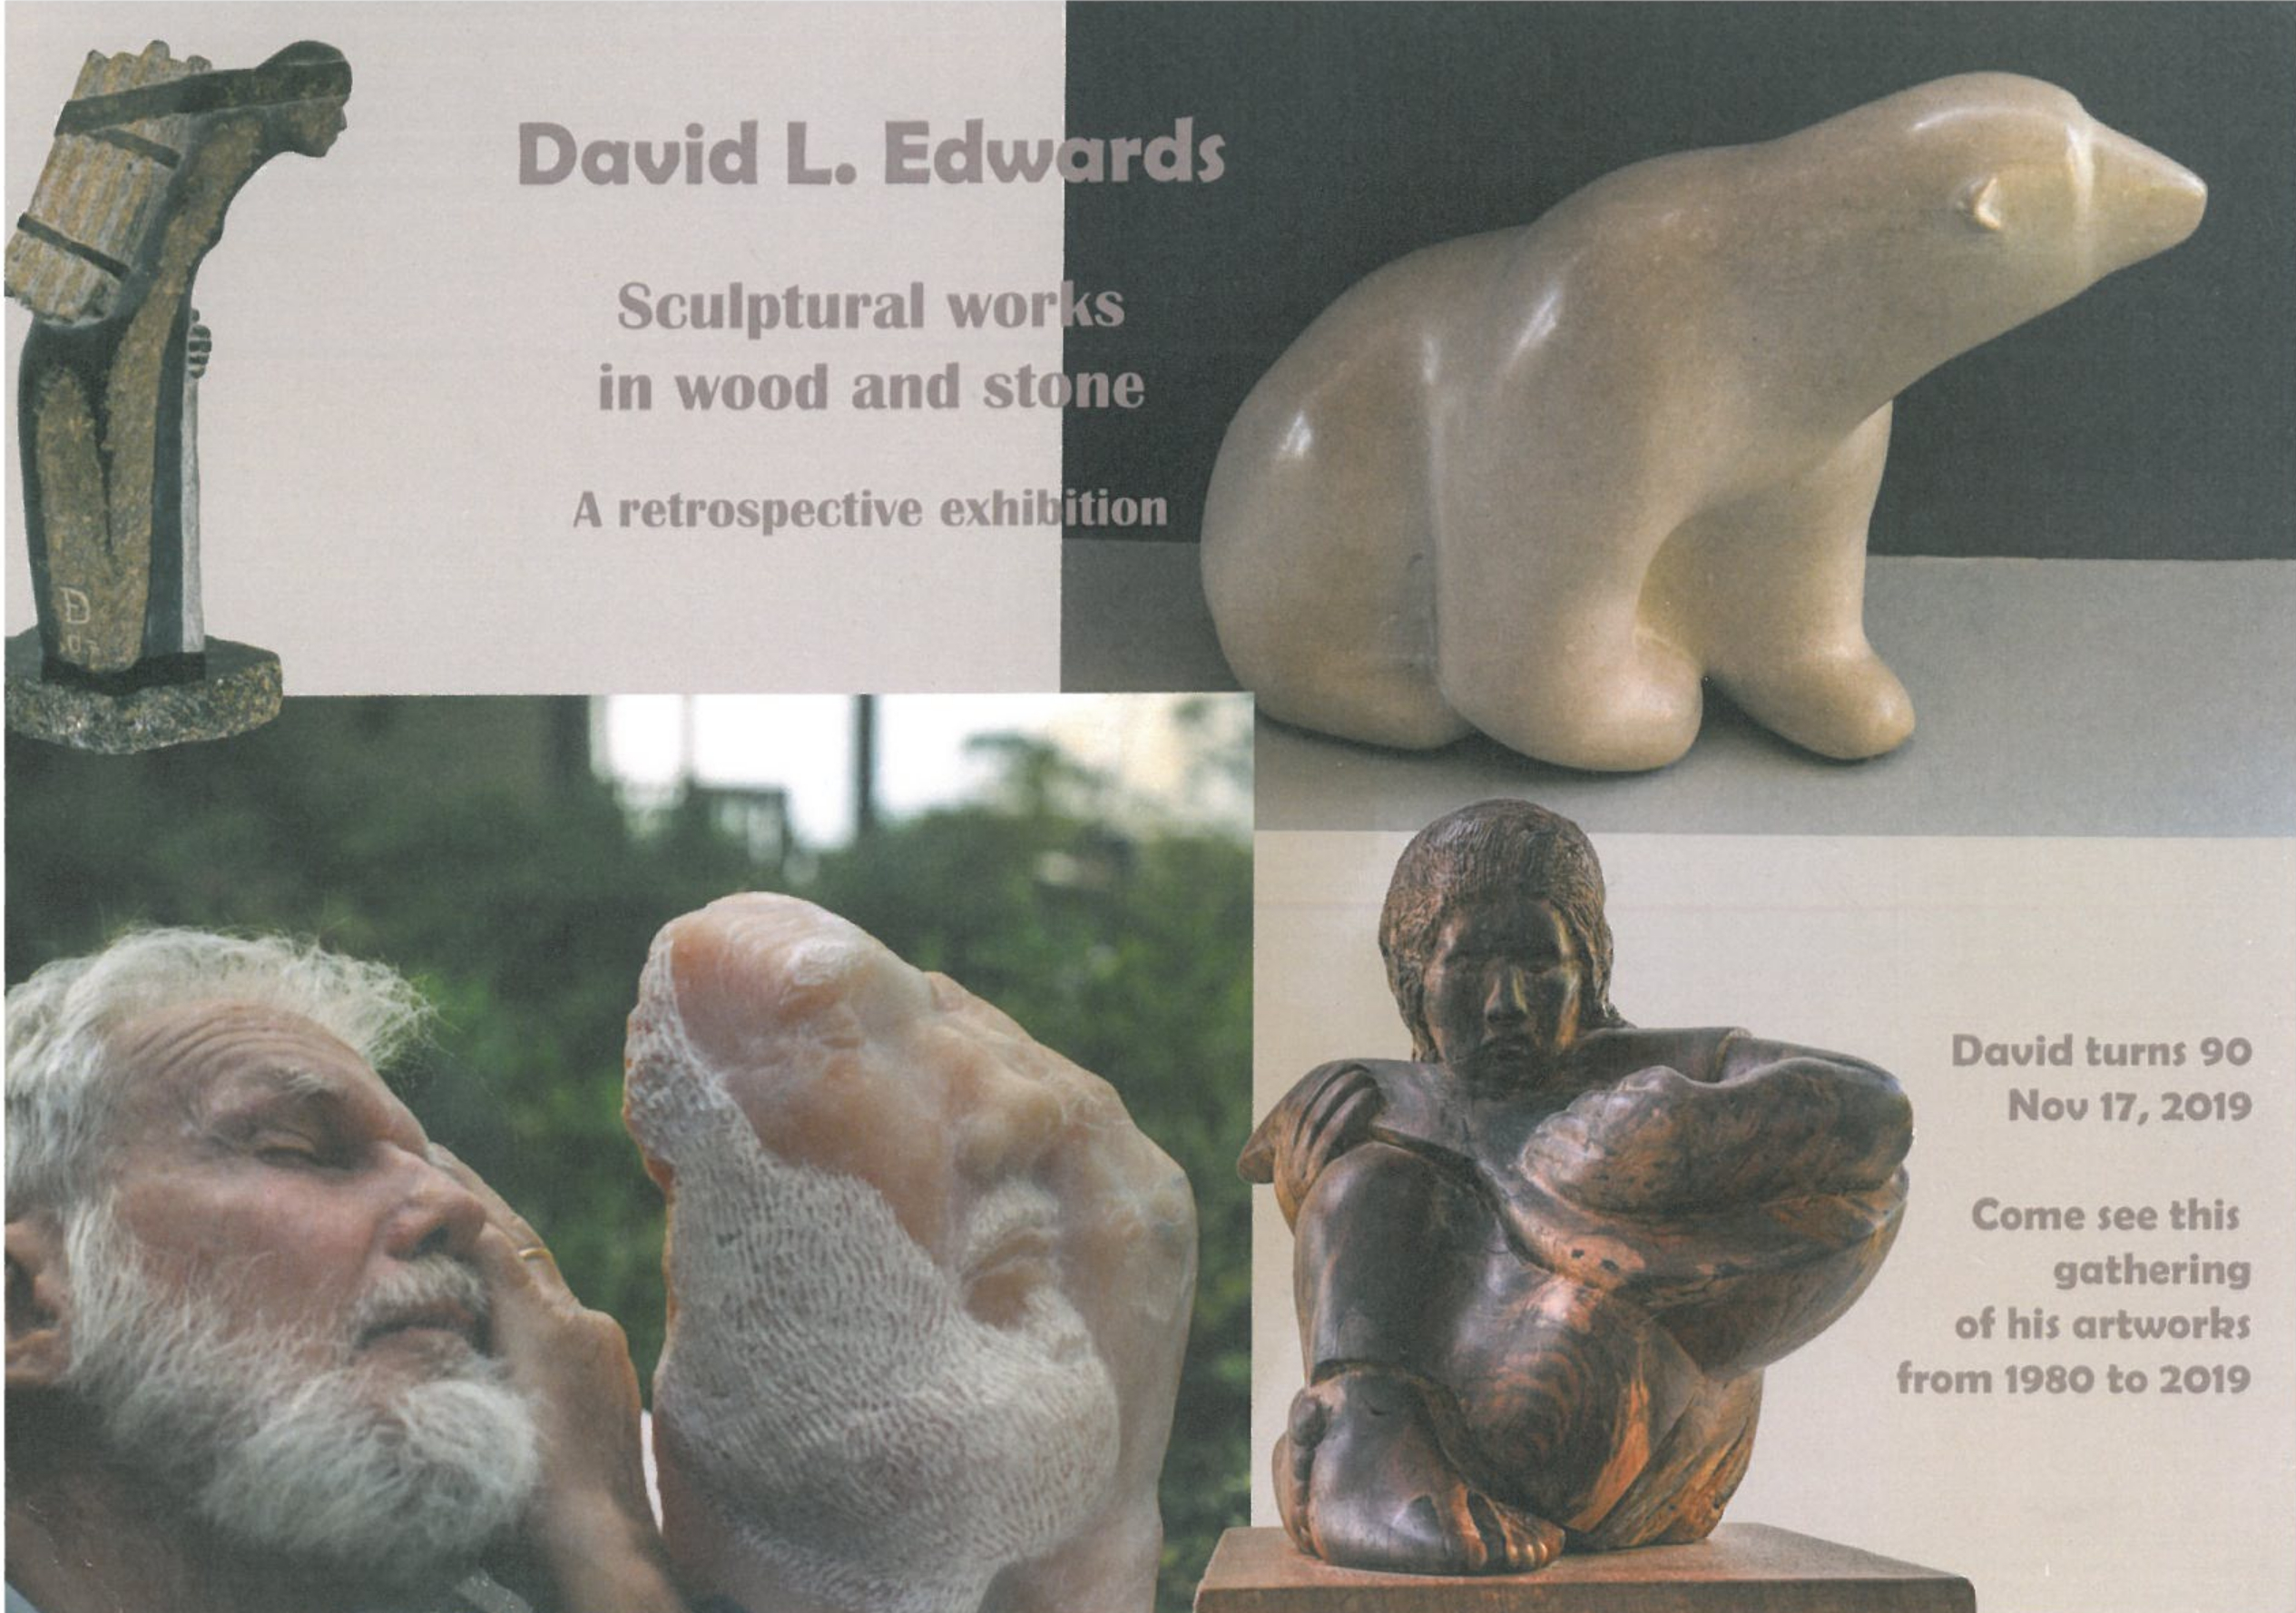 David L. Edwards Retrospective Exhibition